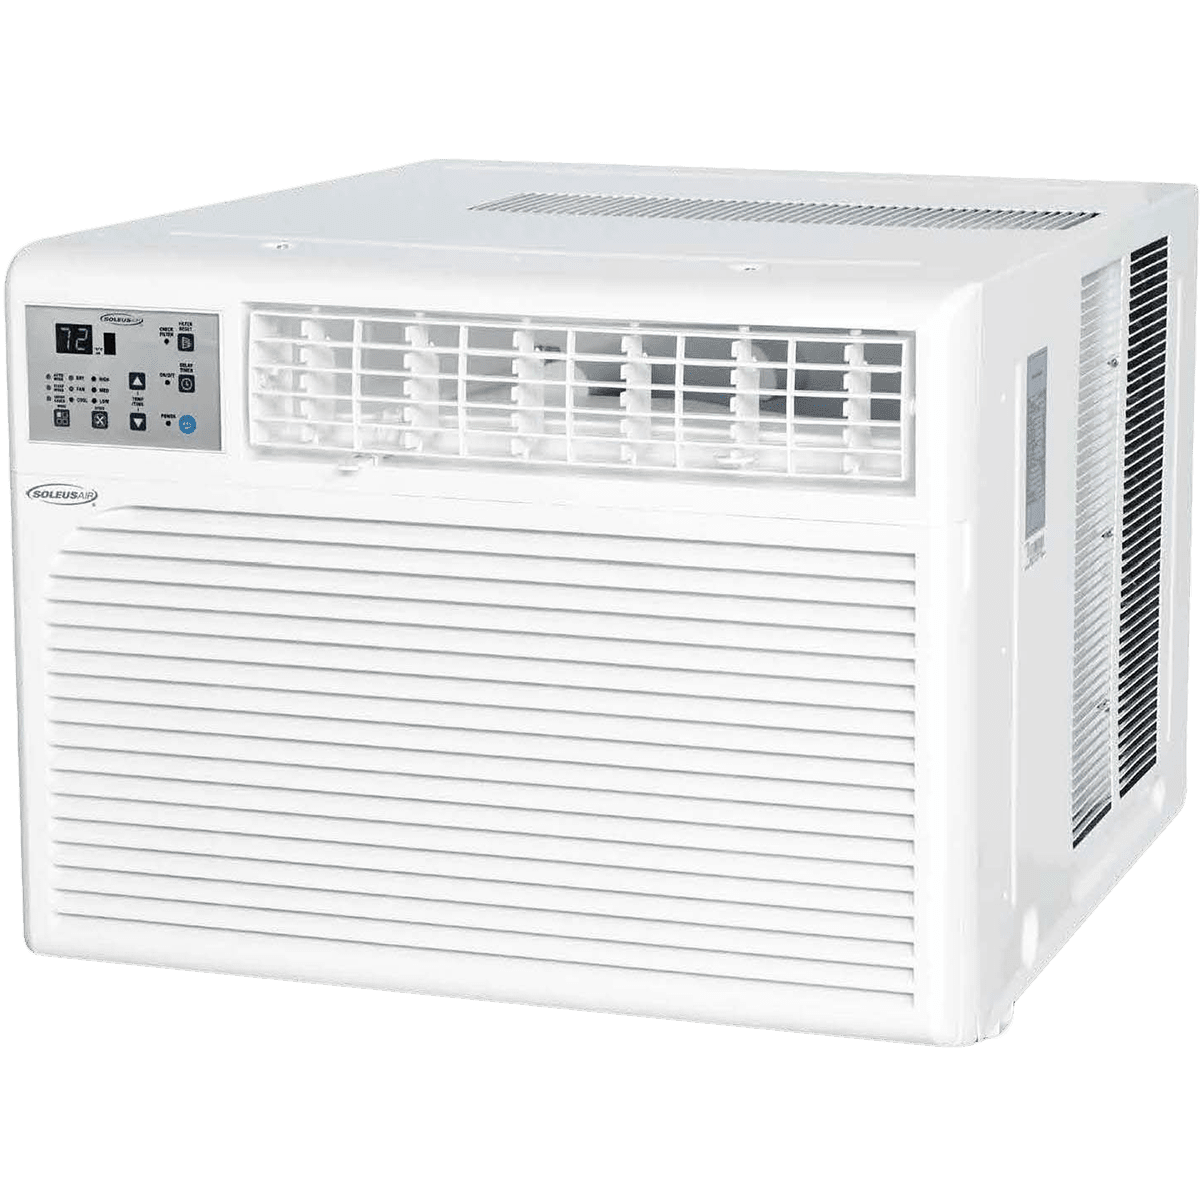 Soleus Air 18,300 BTU Window Air Conditioner (WS-18E-01)